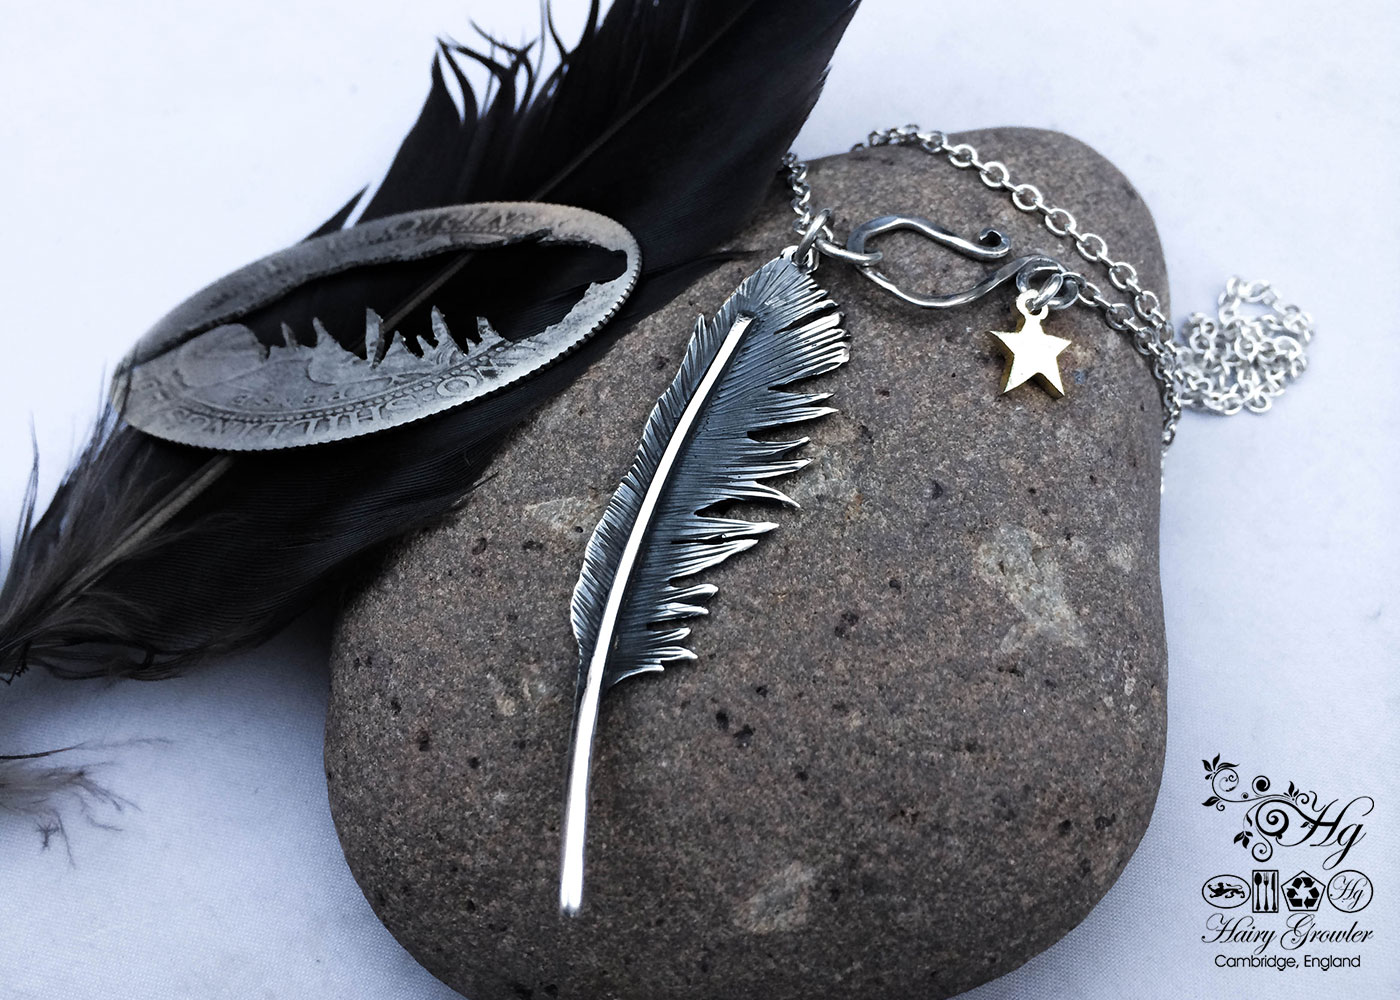 Black Raven Feathers were worn by some Native Americans to express and symbolise changes in spirit.